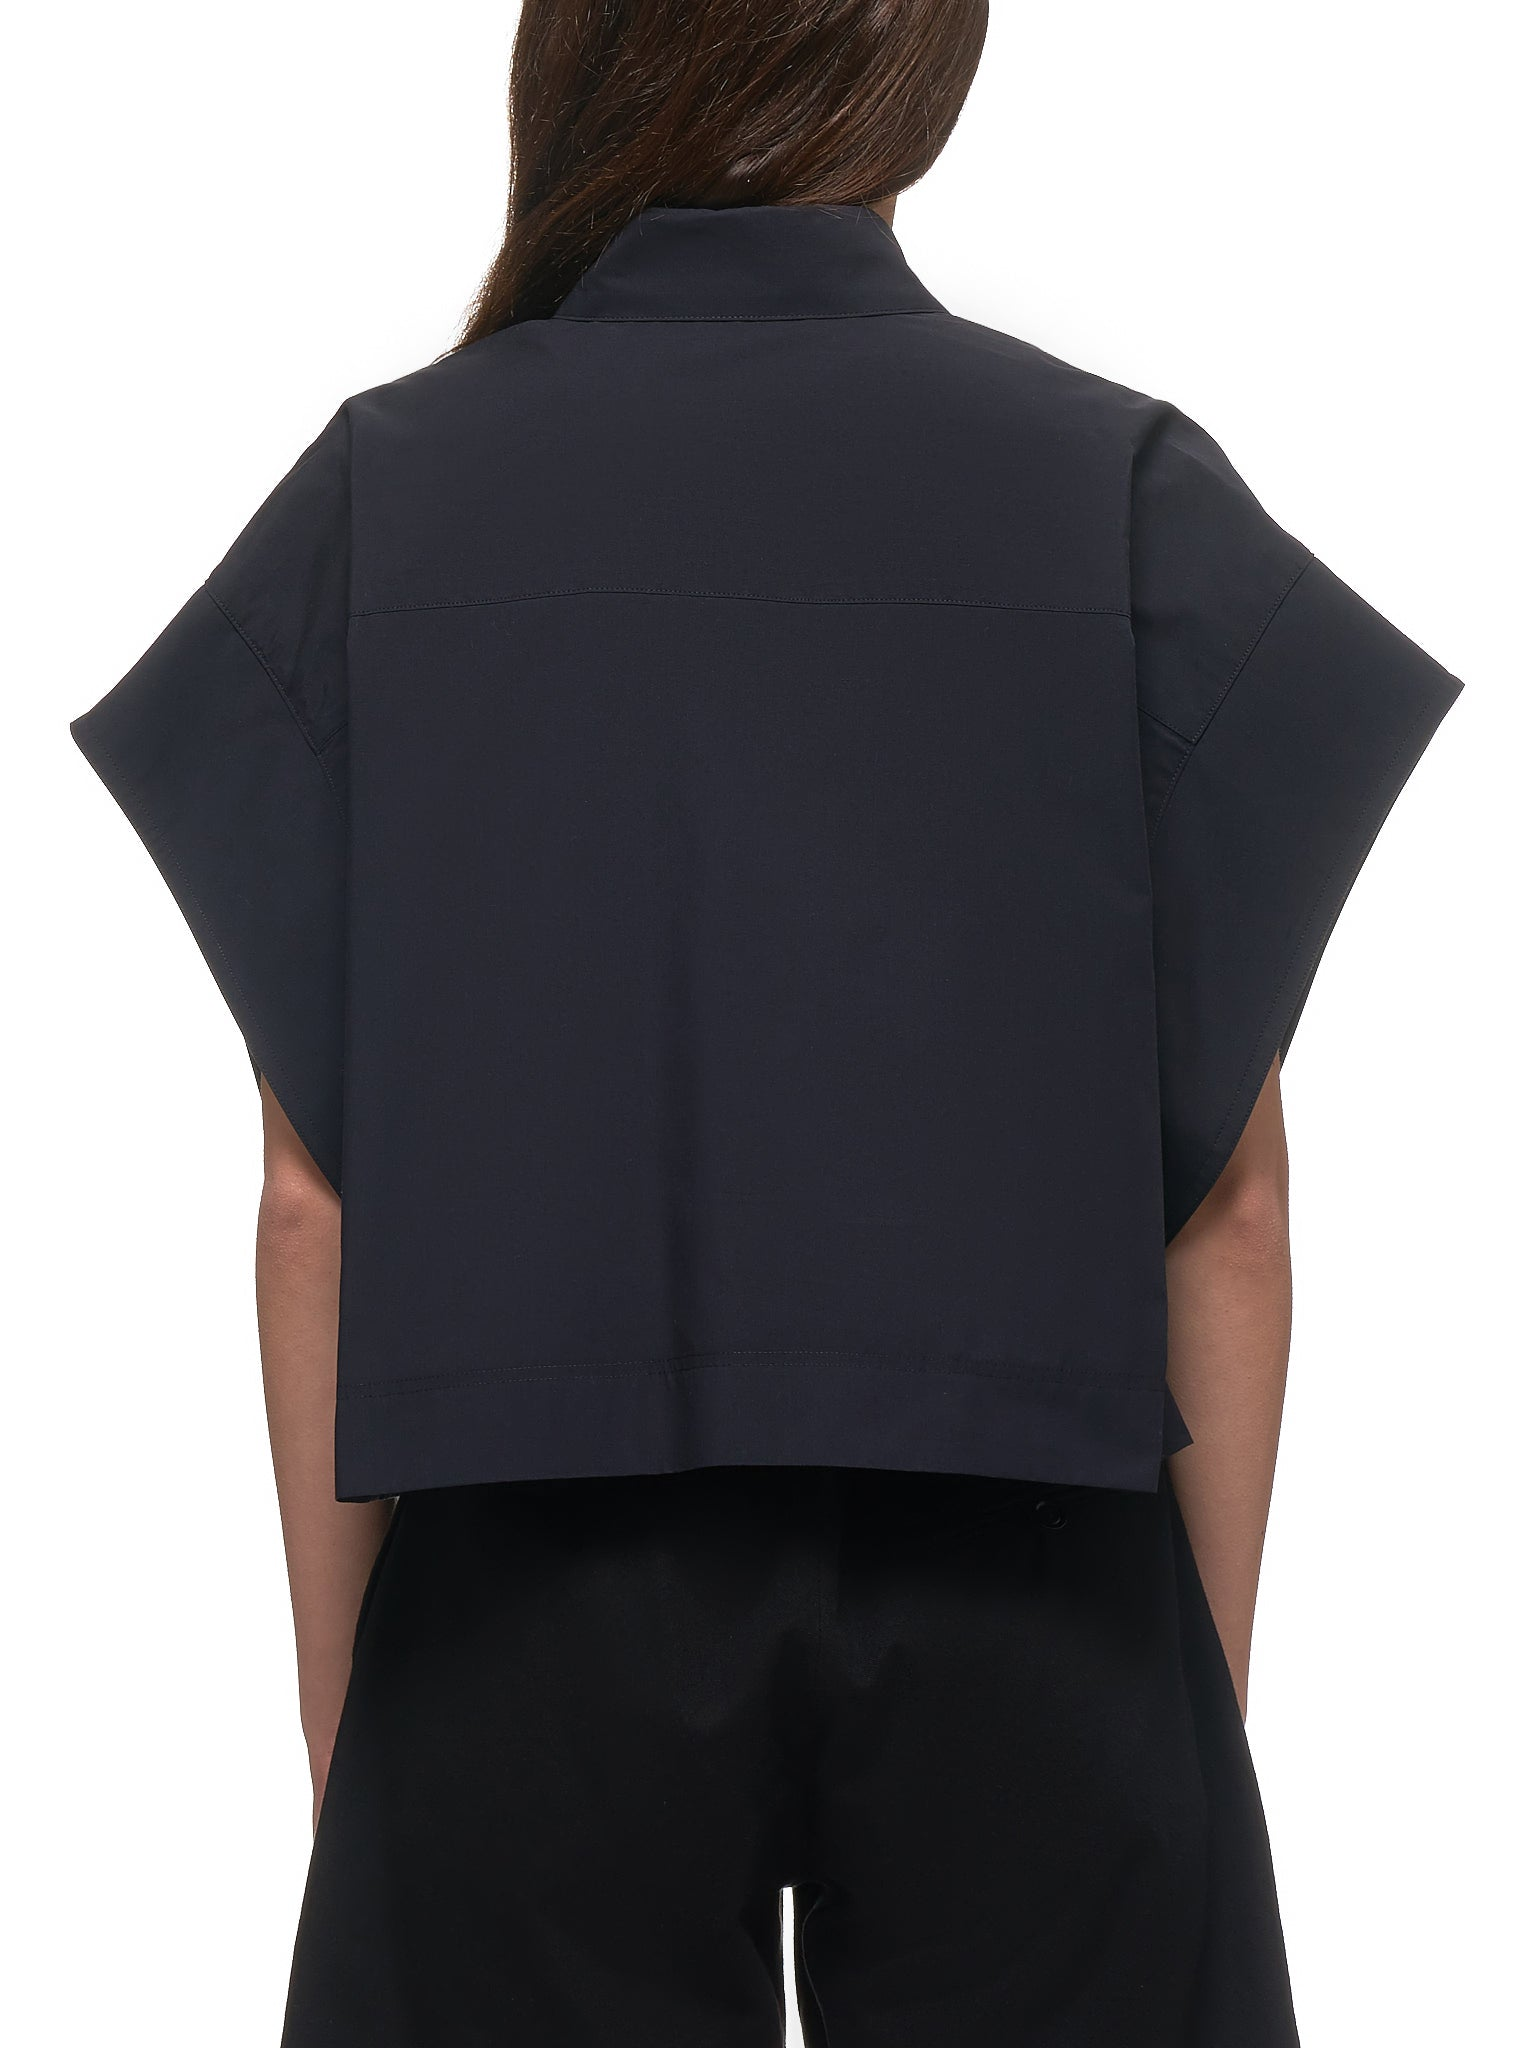 Cropped Shirt-Vest (YN-B43-030-2-BLACK)